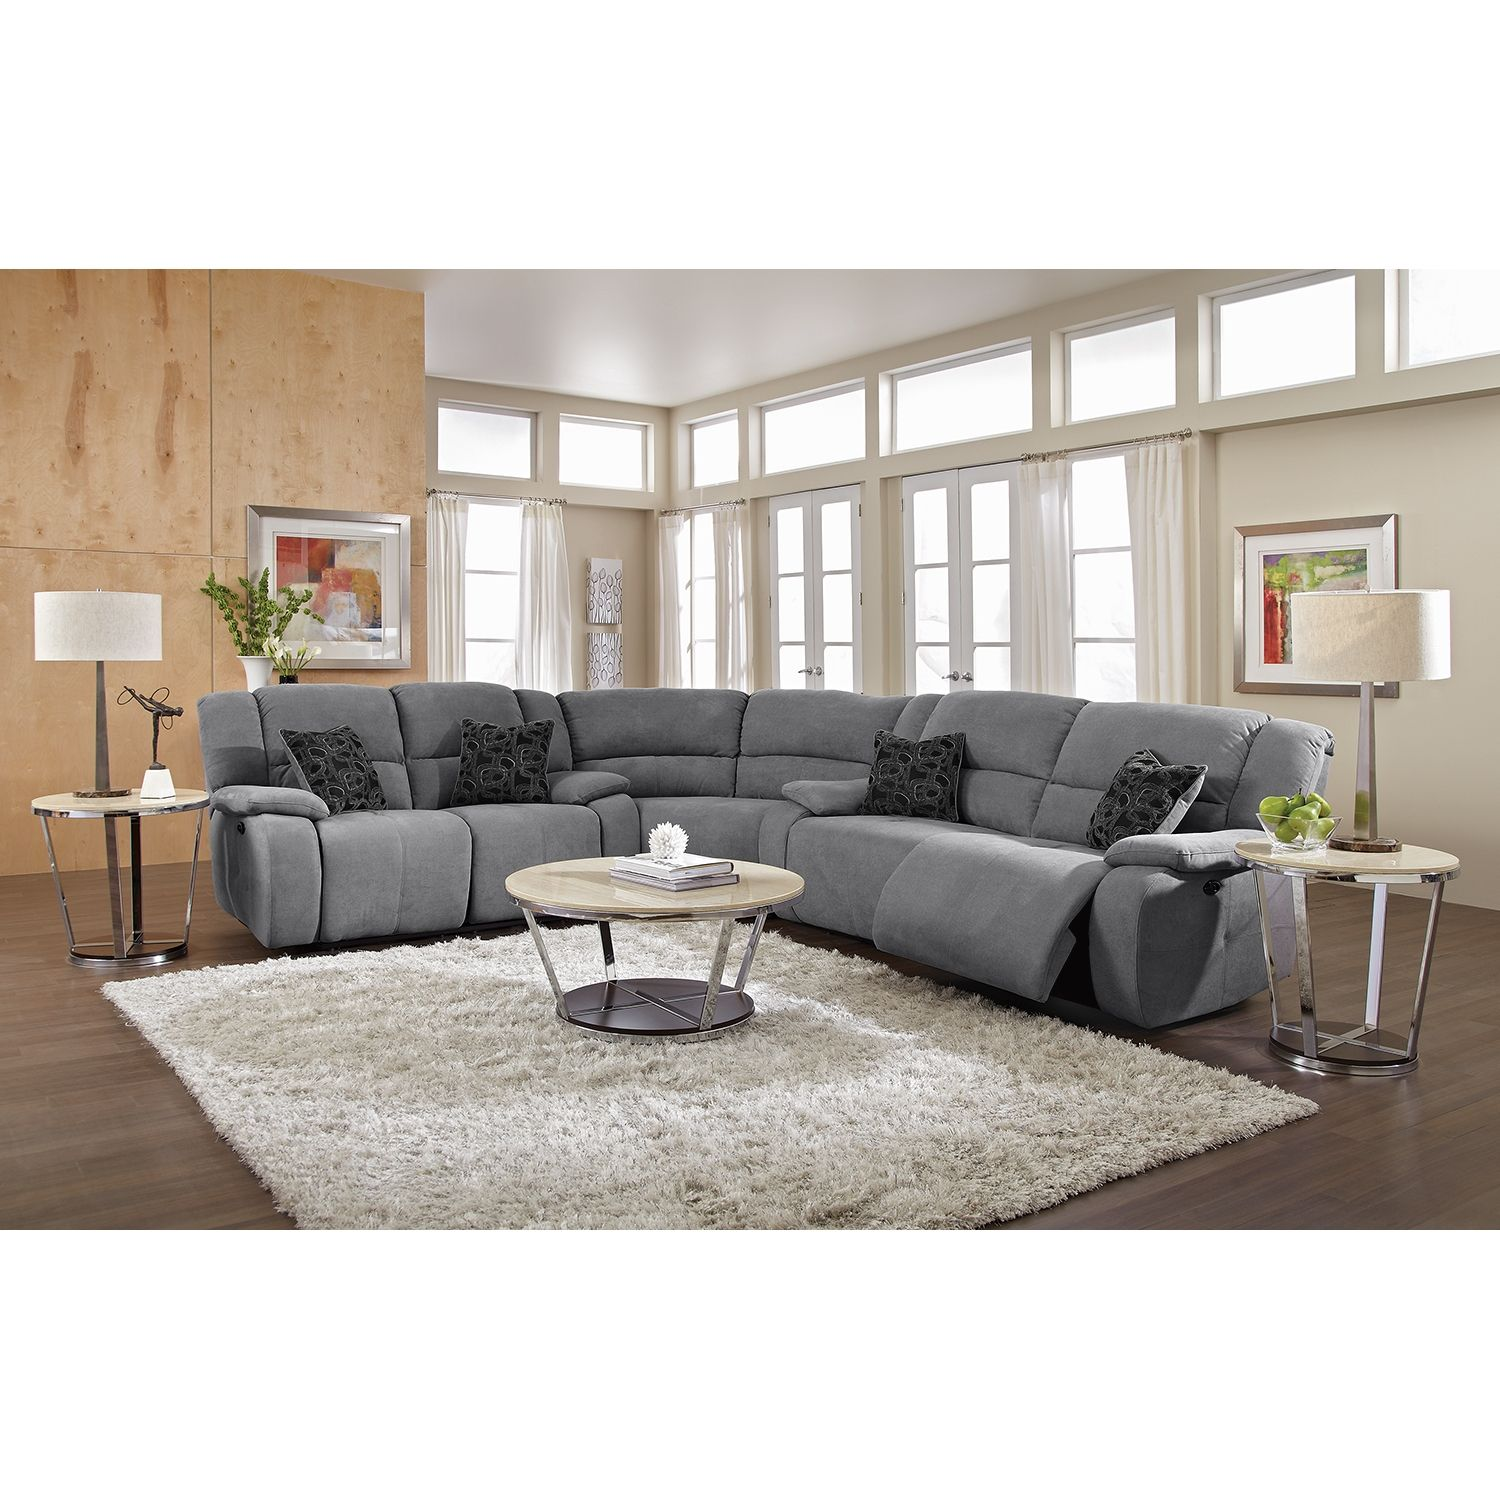 Love this couch gray is awesome future living room for Sectional sofa with a recliner